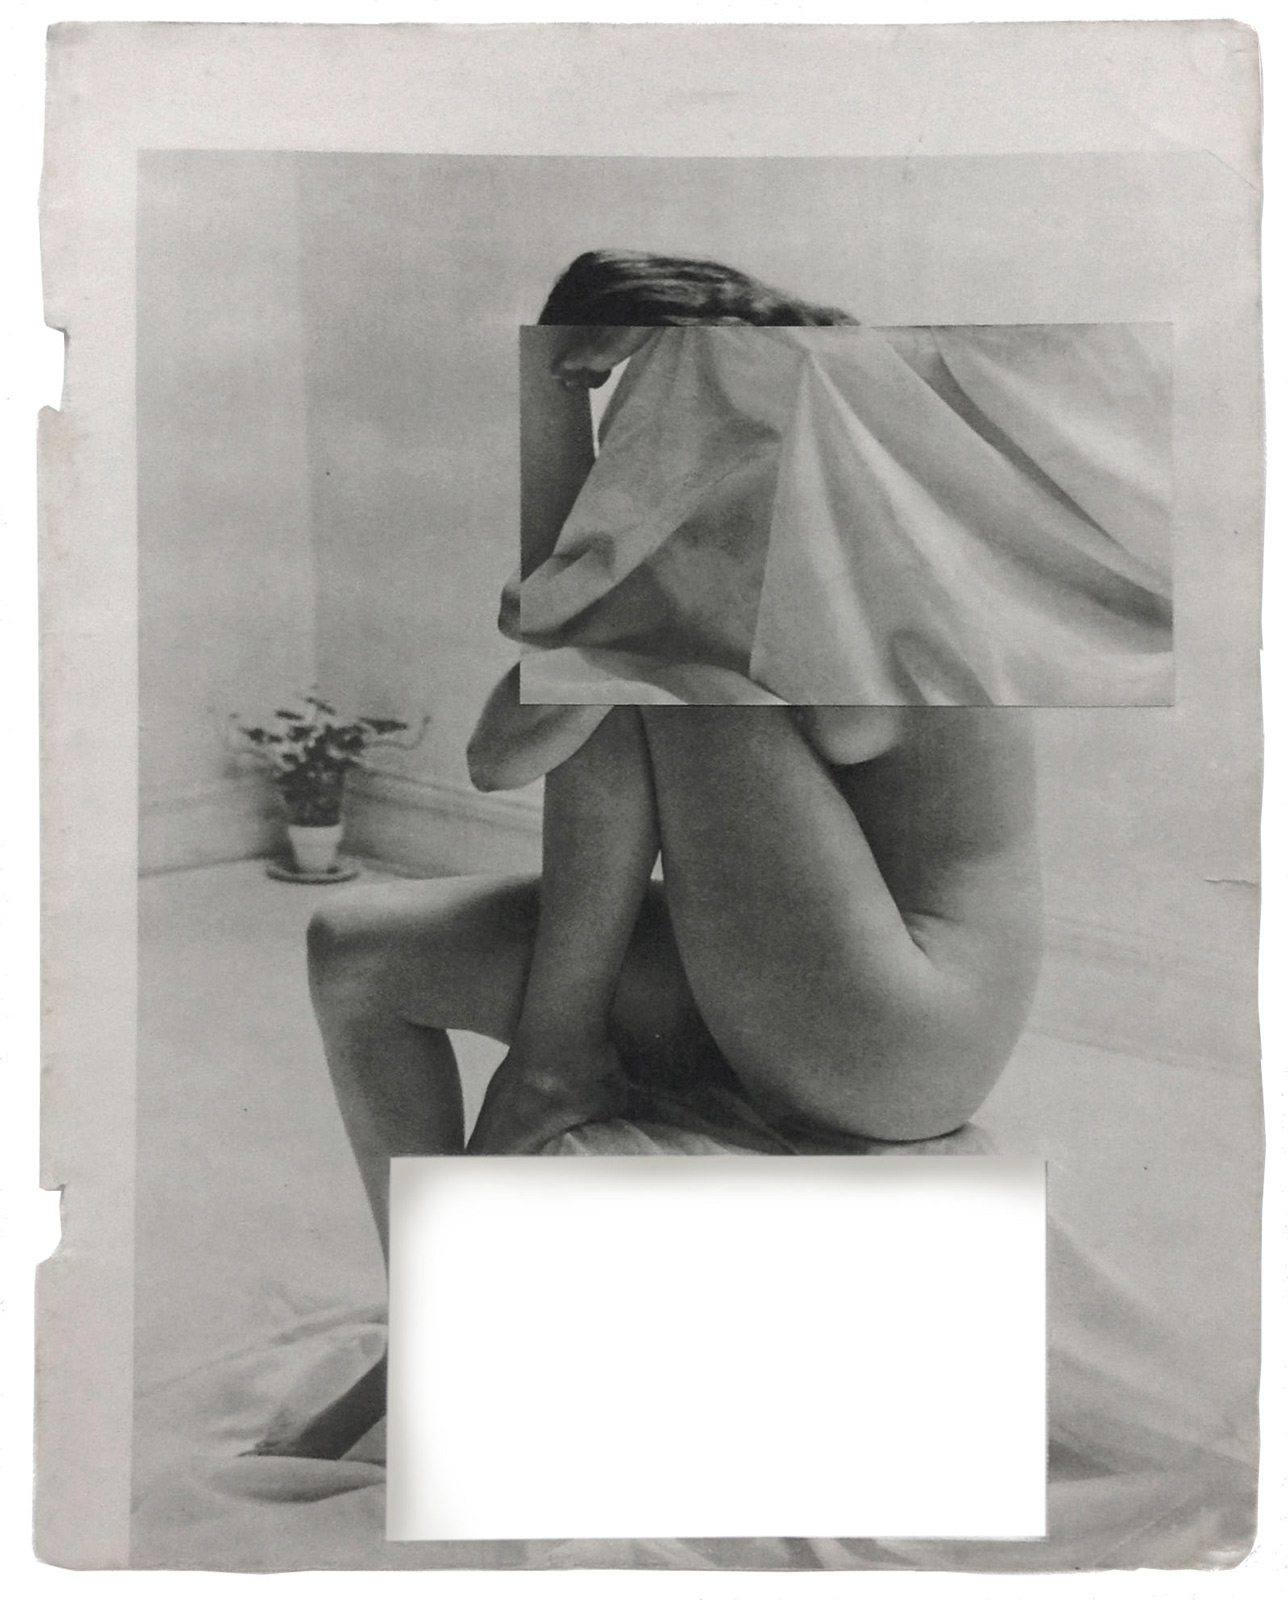 Cecilia Bonilla | Sets for domestic leisure 1 | 2015 | Collage | 29x23cm